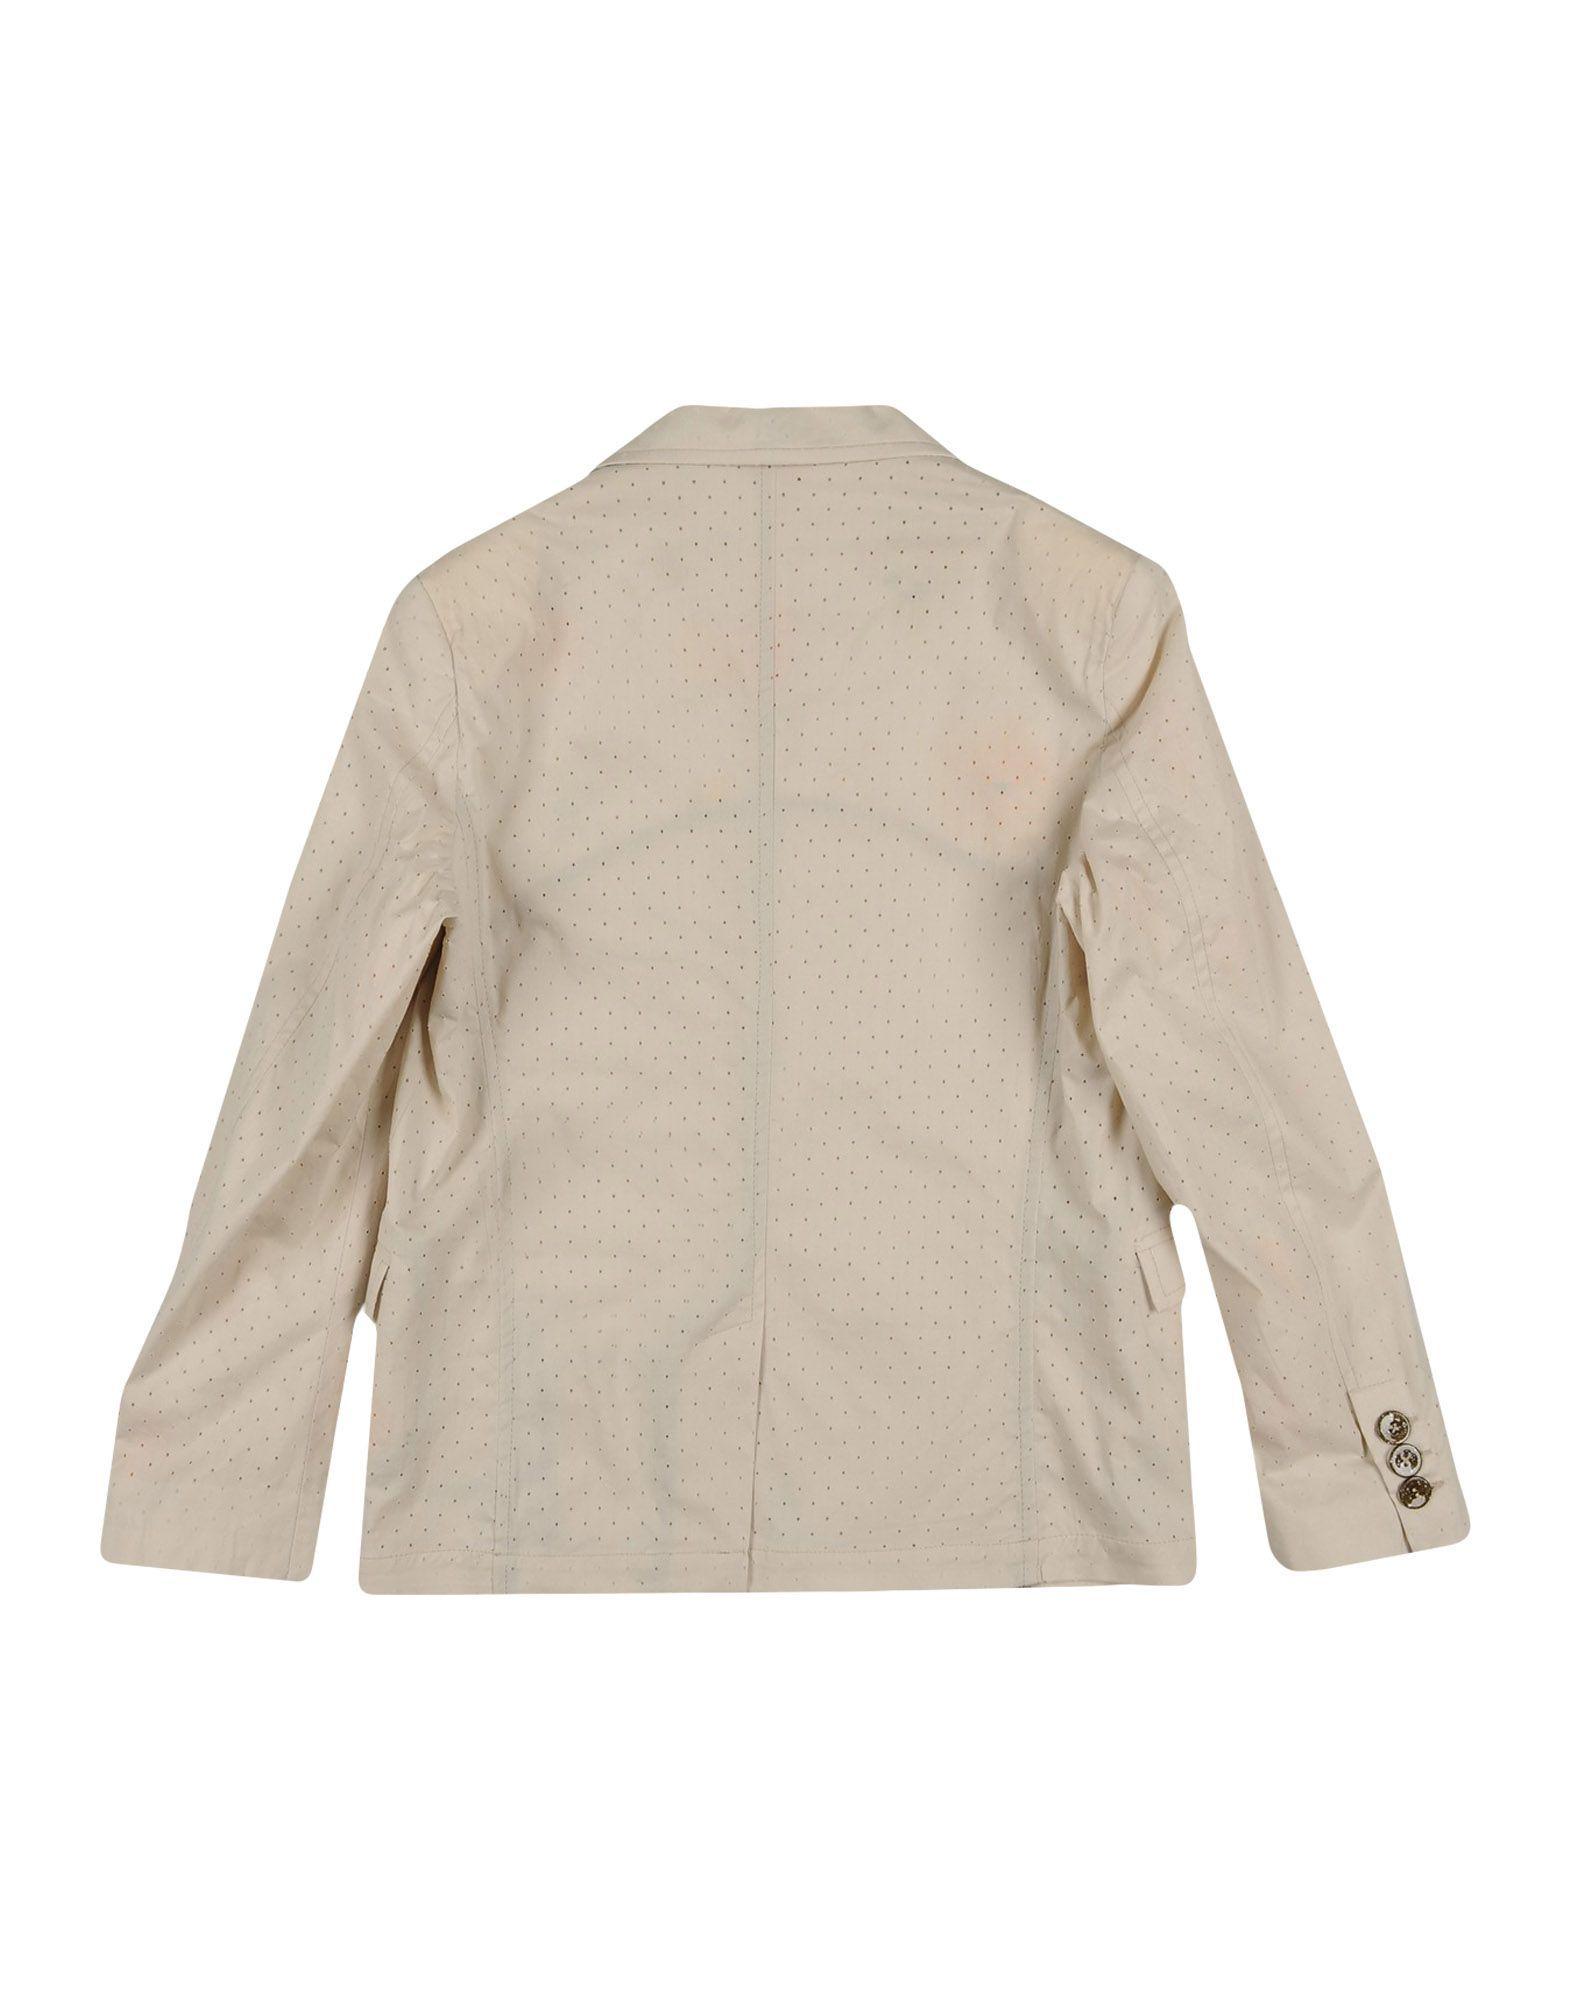 SUITS AND JACKETS Neill Katter Beige Boy Cotton